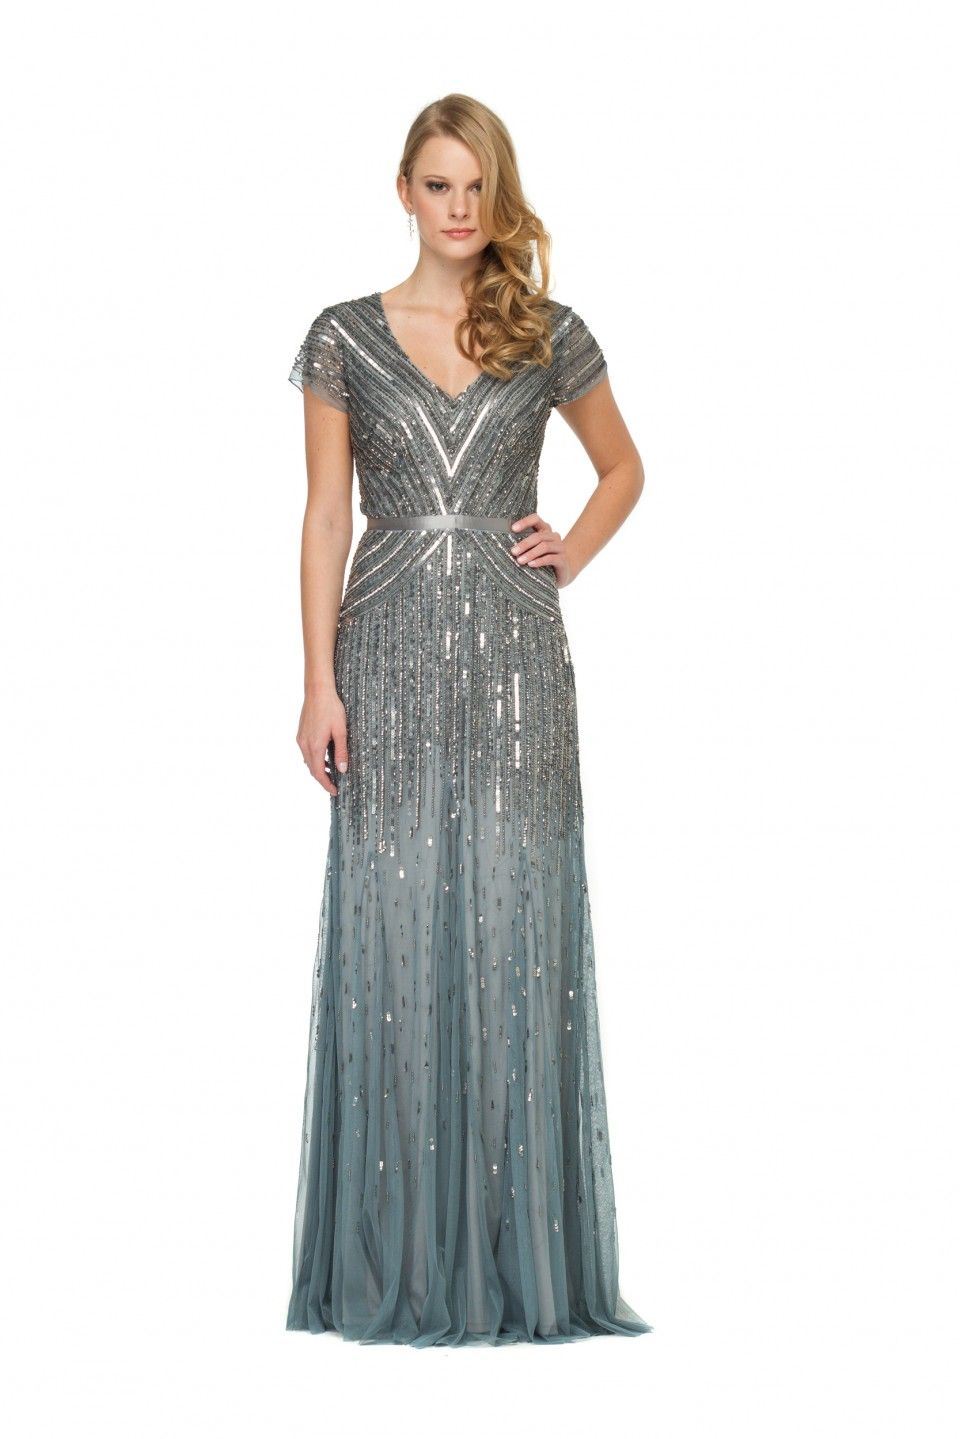 Long dress for wedding guest  SAME NO MORE  Adrianna Papell Long Dress  haute couture